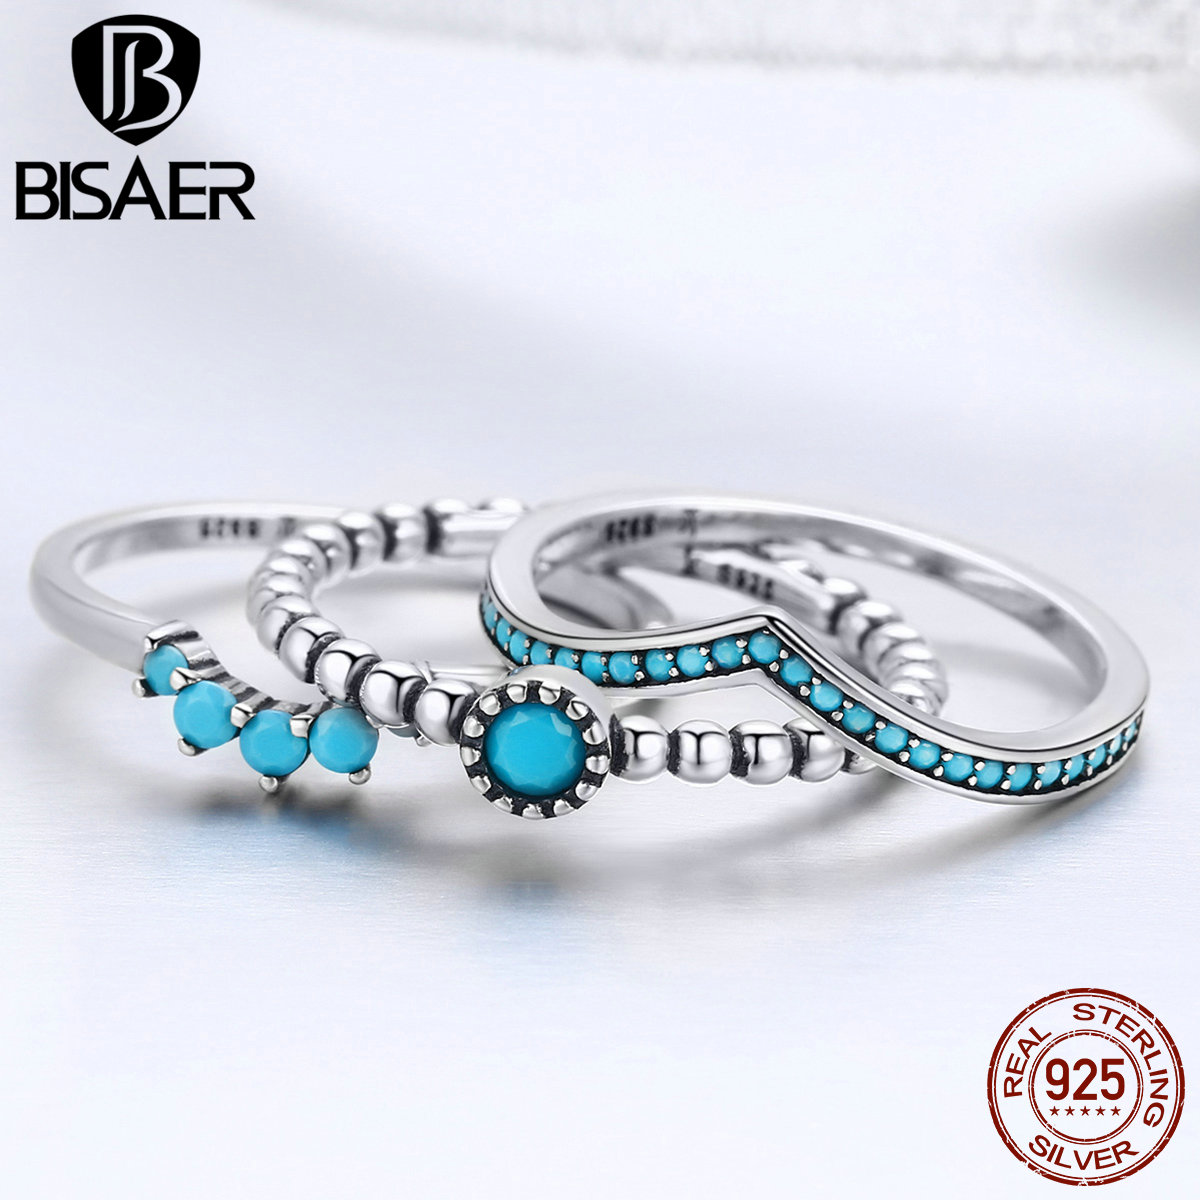 11.11 Silver 3 PCS Silver Ring 925 Sterling Silver Blue CZ Bohemia Wave Ring Eye Finger Ring For Women Ring Sets GXR368 vintage rhinestone hollowed wave ring for women